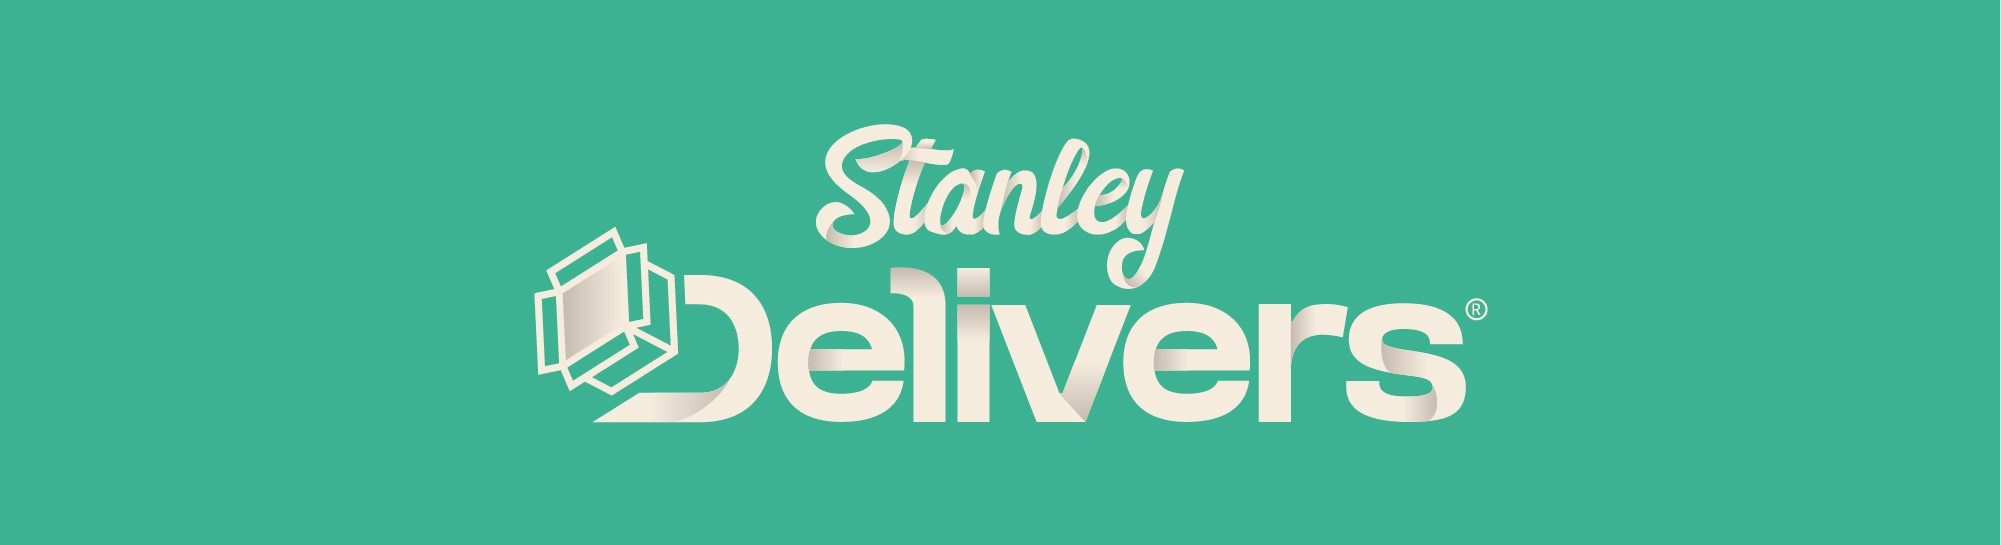 Stanley Delivers